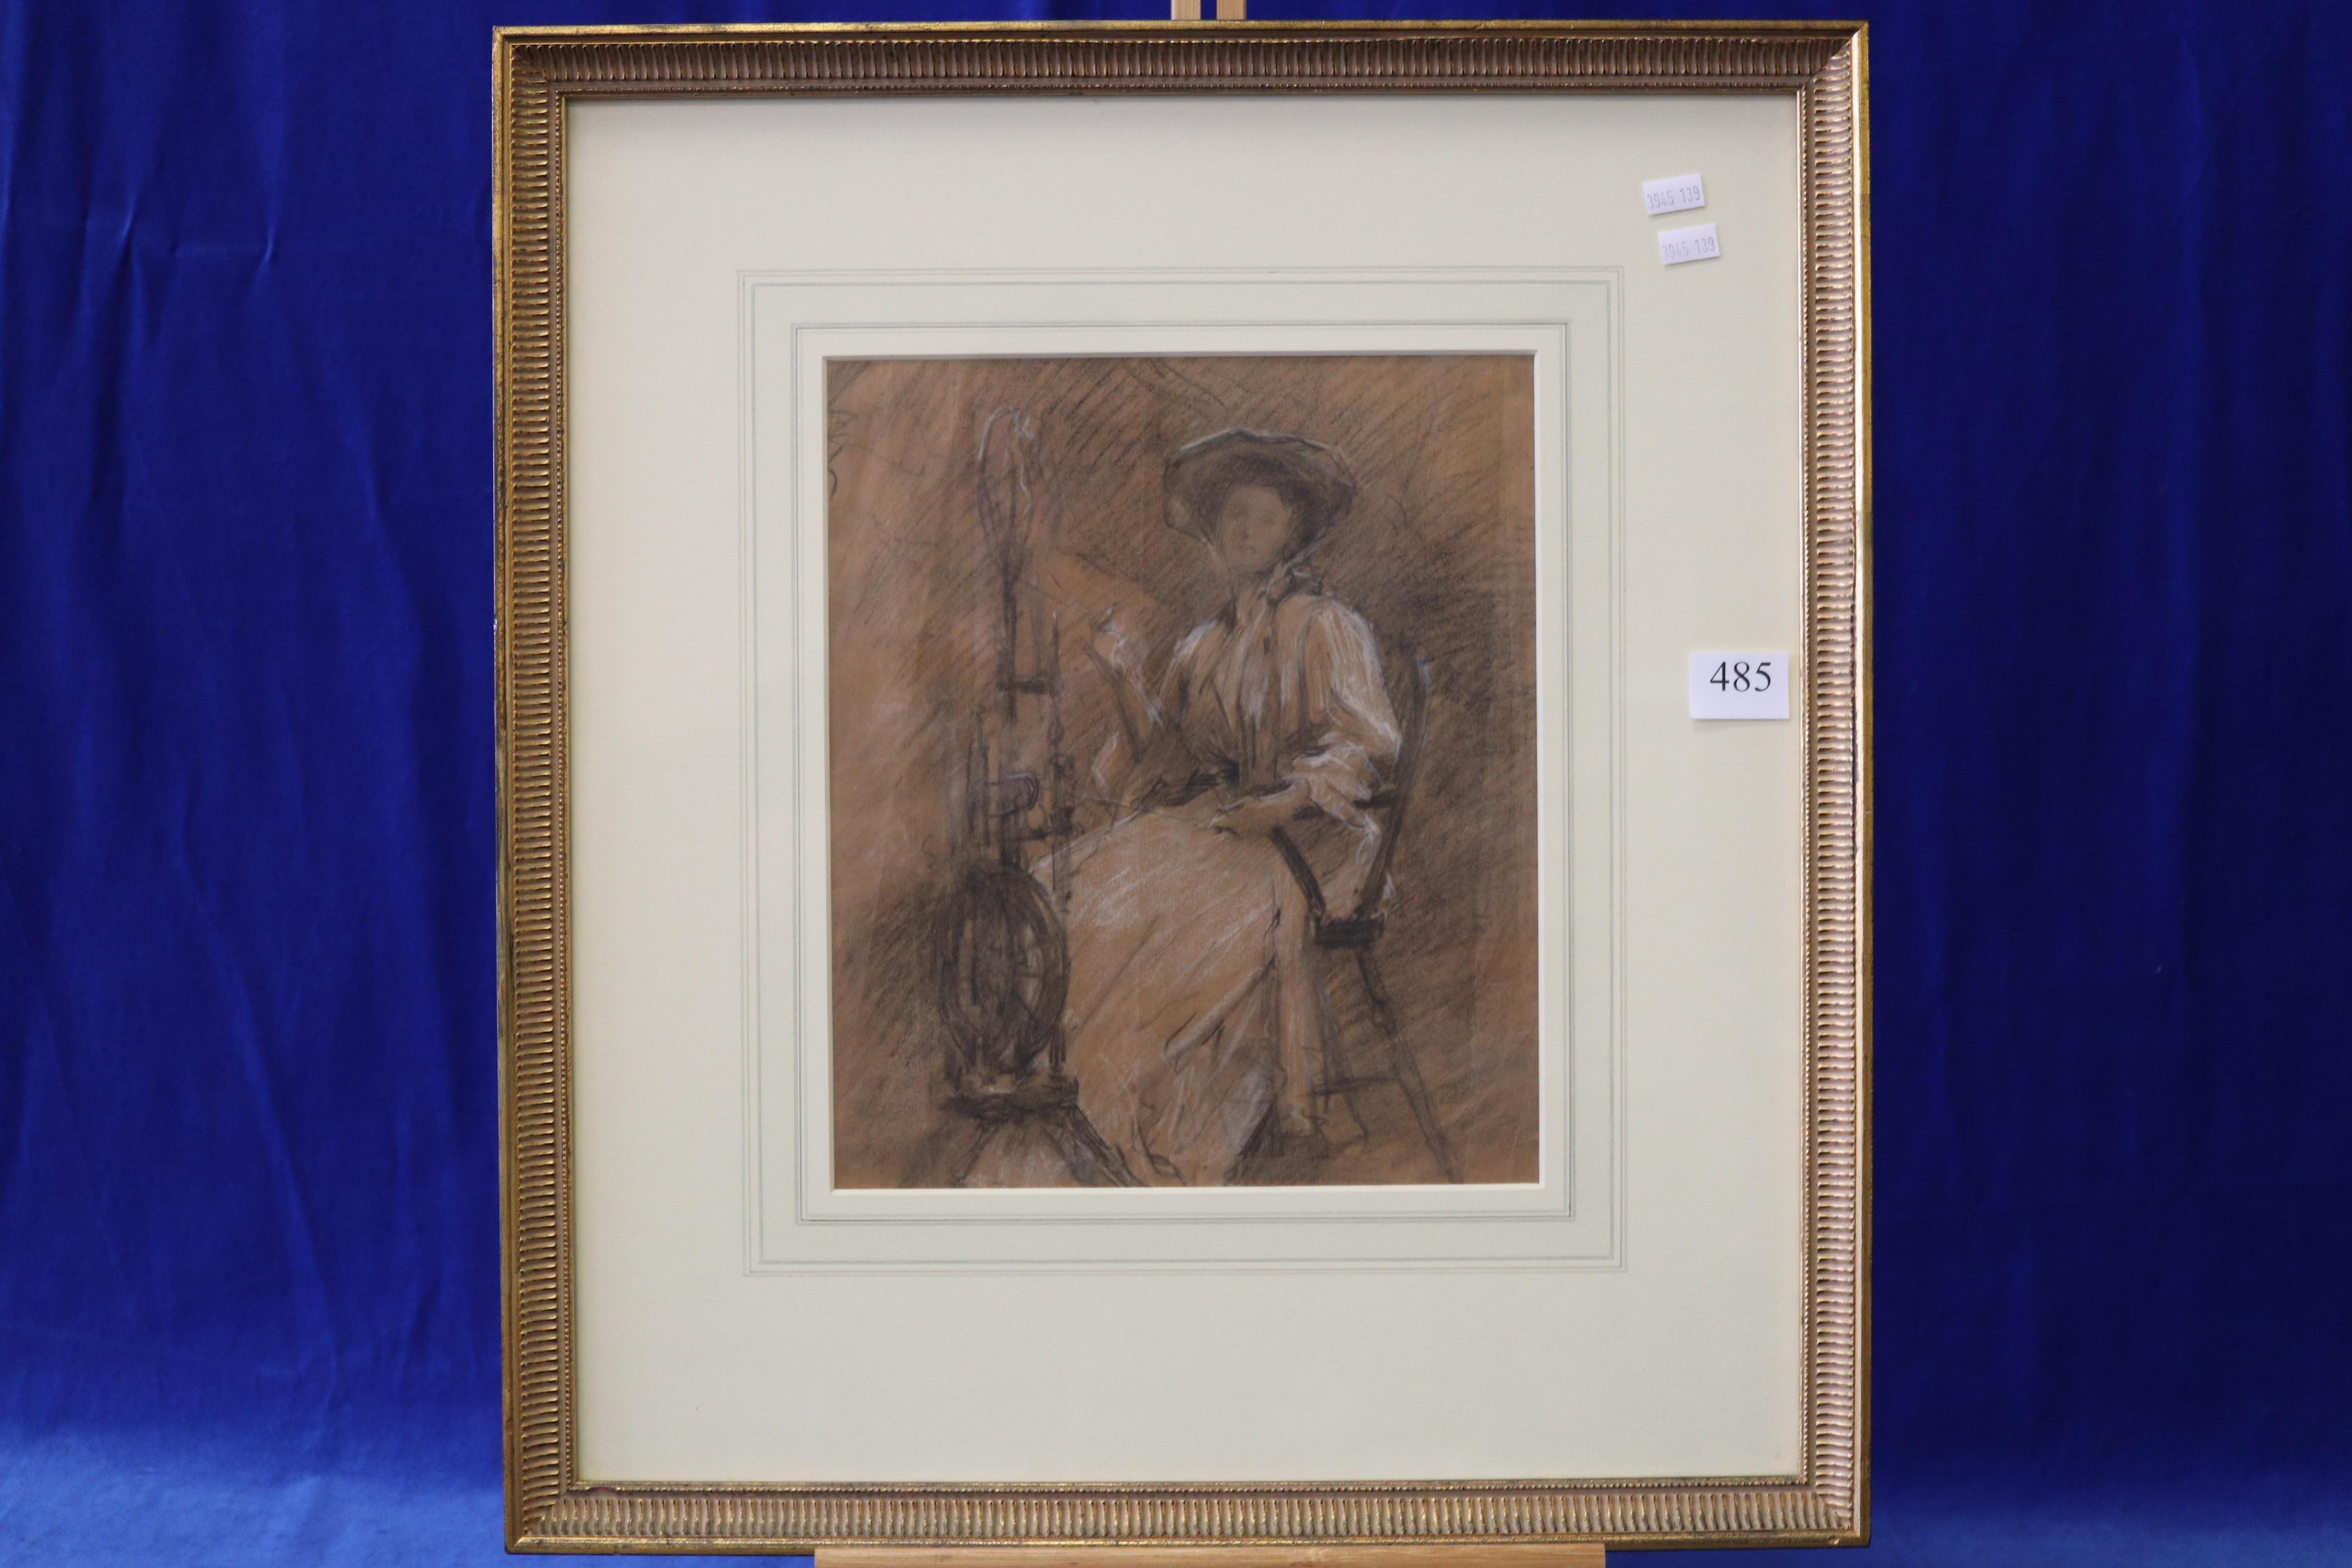 """SAMUEL MELTON FISHER, RA (BRITISH, 1859-1939) """"STUDY LADY WITH SPINNING WHEEL"""", INSCRIBED VERSO: FROM A FOLIO OF DRAWINGS BY SAMUEL MELTON FISHER, RA RWA PS, CHARCOAL ON BROWN PAPER, MEASURES 26CM X 30.5CM"""